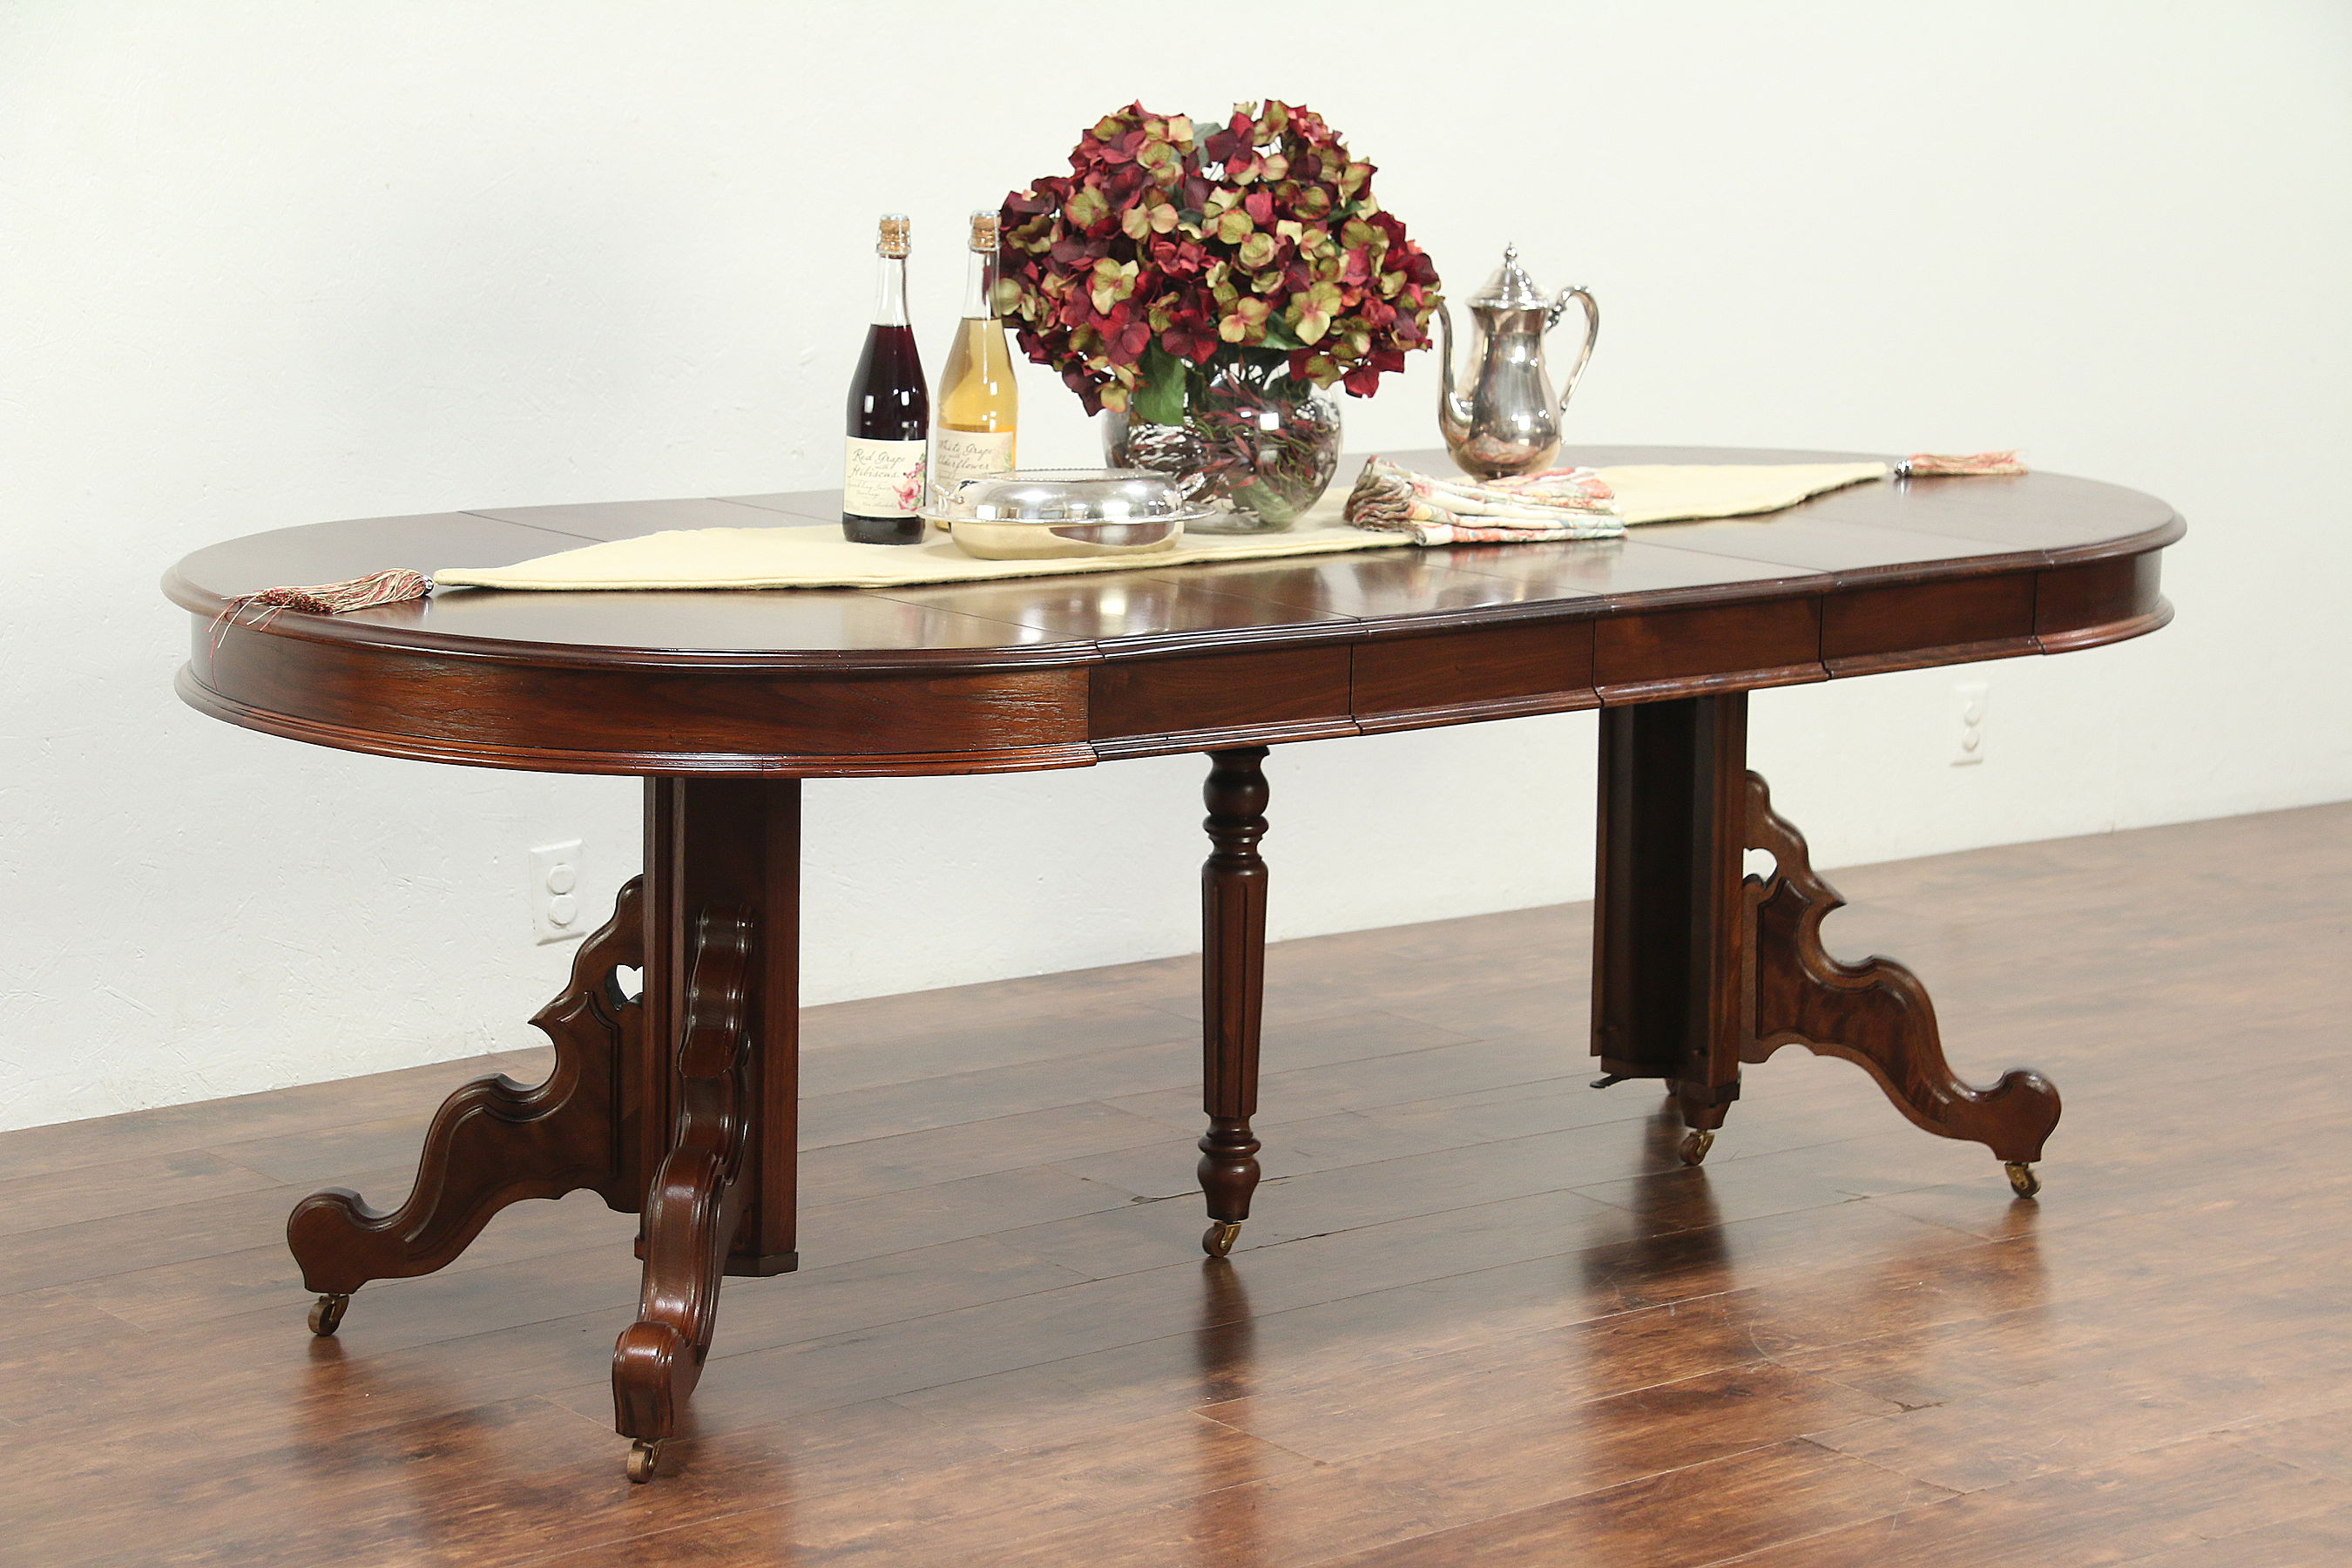 Victorian Antique Round Walnut Dining Table 4 Leaves Extends 7 5 29110